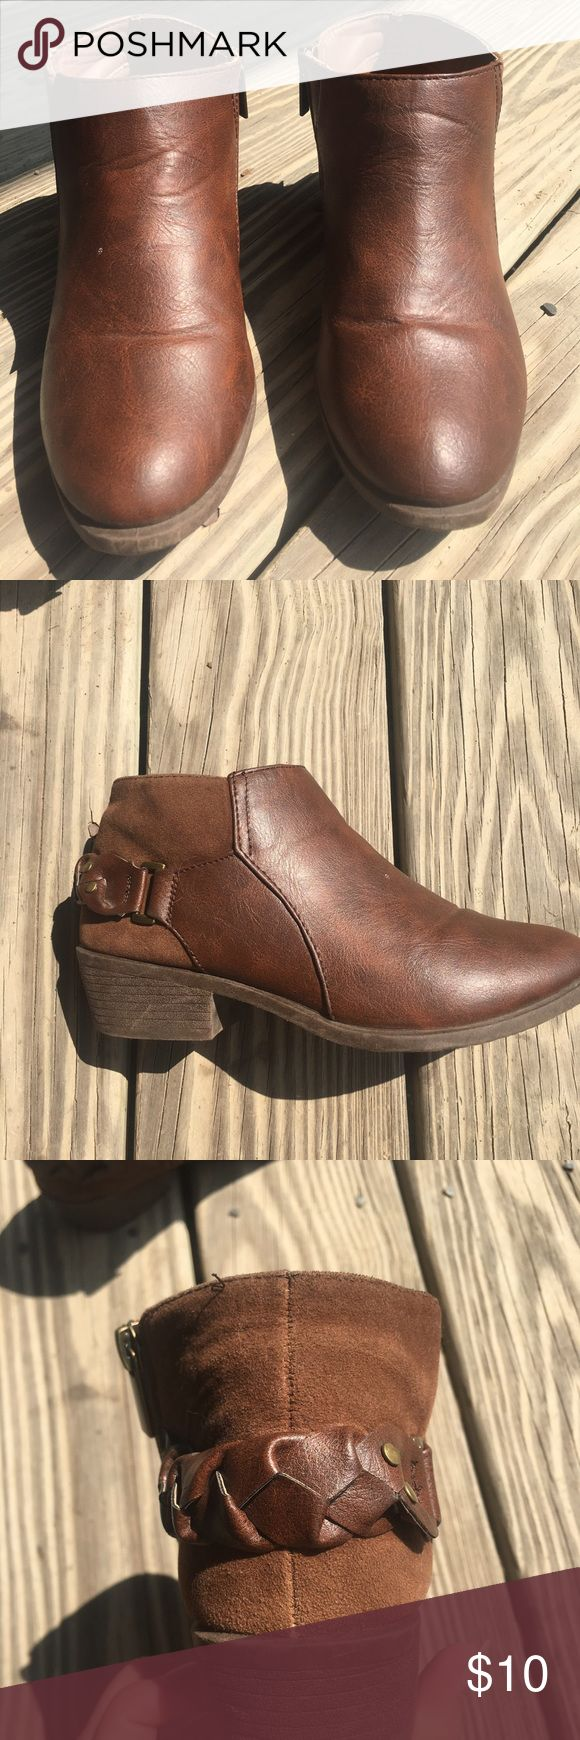 rue 21 ankle boots size s (6/7) rue 21 ankle boots size s (6/7) brown and previously worn. still in great condition!! Rue 21 Shoes Ankle Boots & Booties